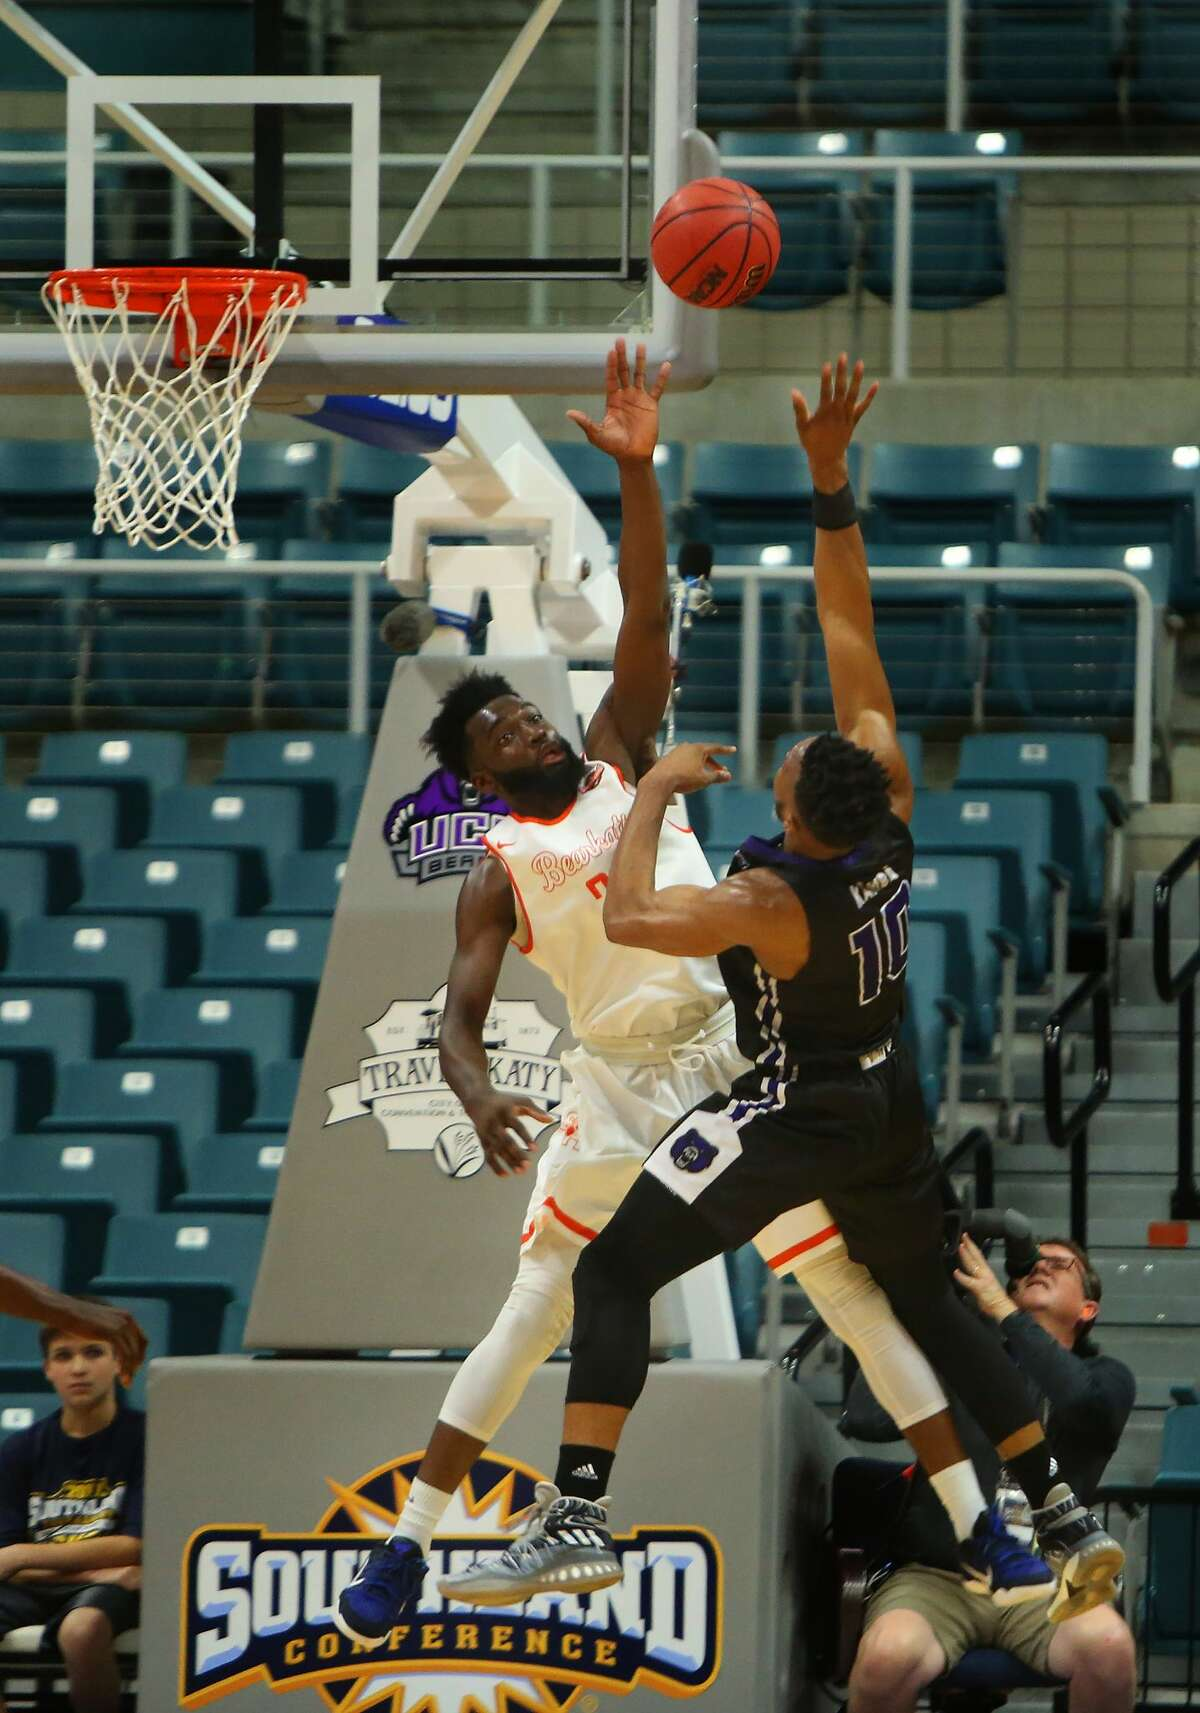 Sam Houston guard Dakarai Henderson tries to block a shot by Central Arkansas guard Mathieu Kamba during a Sam Houston State University Bearkats win over the Central Arkansas University Bears in the first round of the 2017 Southland Conference Men's Basketball Tournament at the Merrell Center, Wednesday, March 8, 2017, in Katy. ( Mark Mulligan / Houston Chronicle )